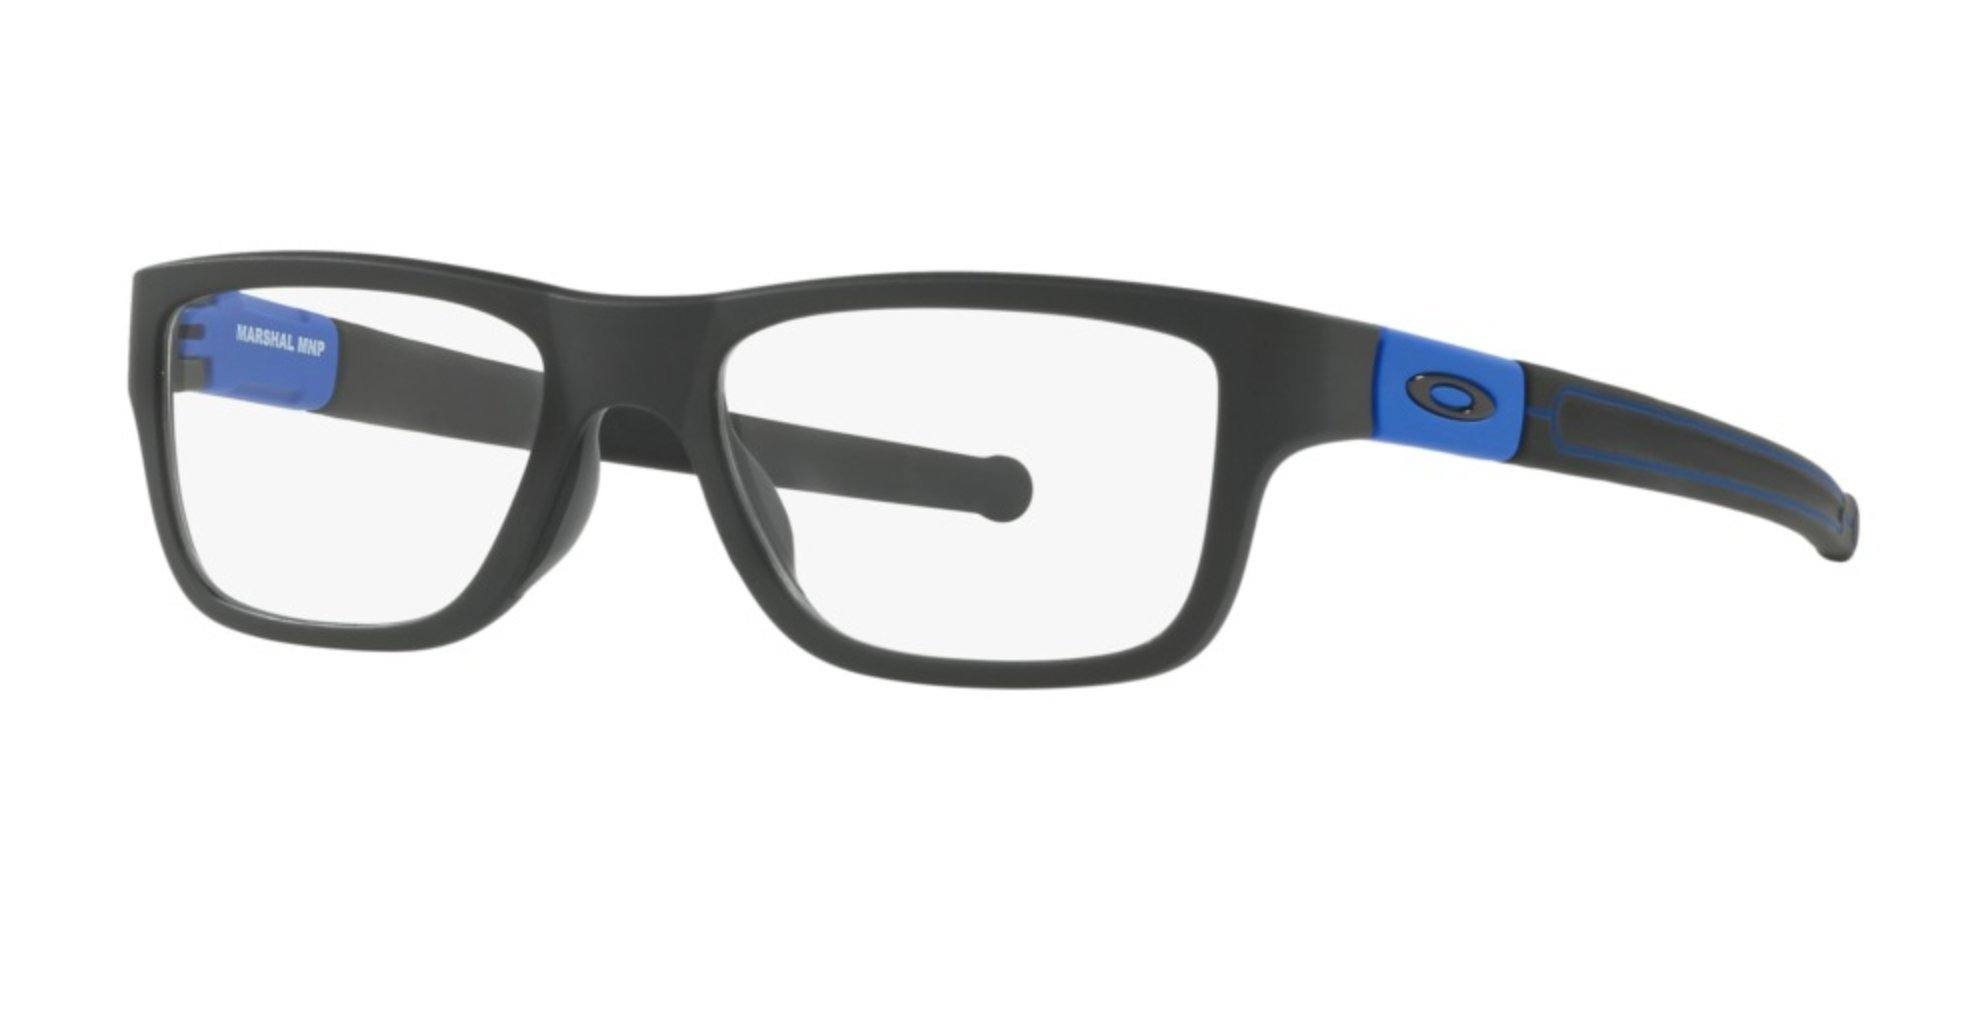 Oakley MARSHAL COBALT COLLECTION OX8091-05 Eyeglasses Satin Black 51mm by Oakley